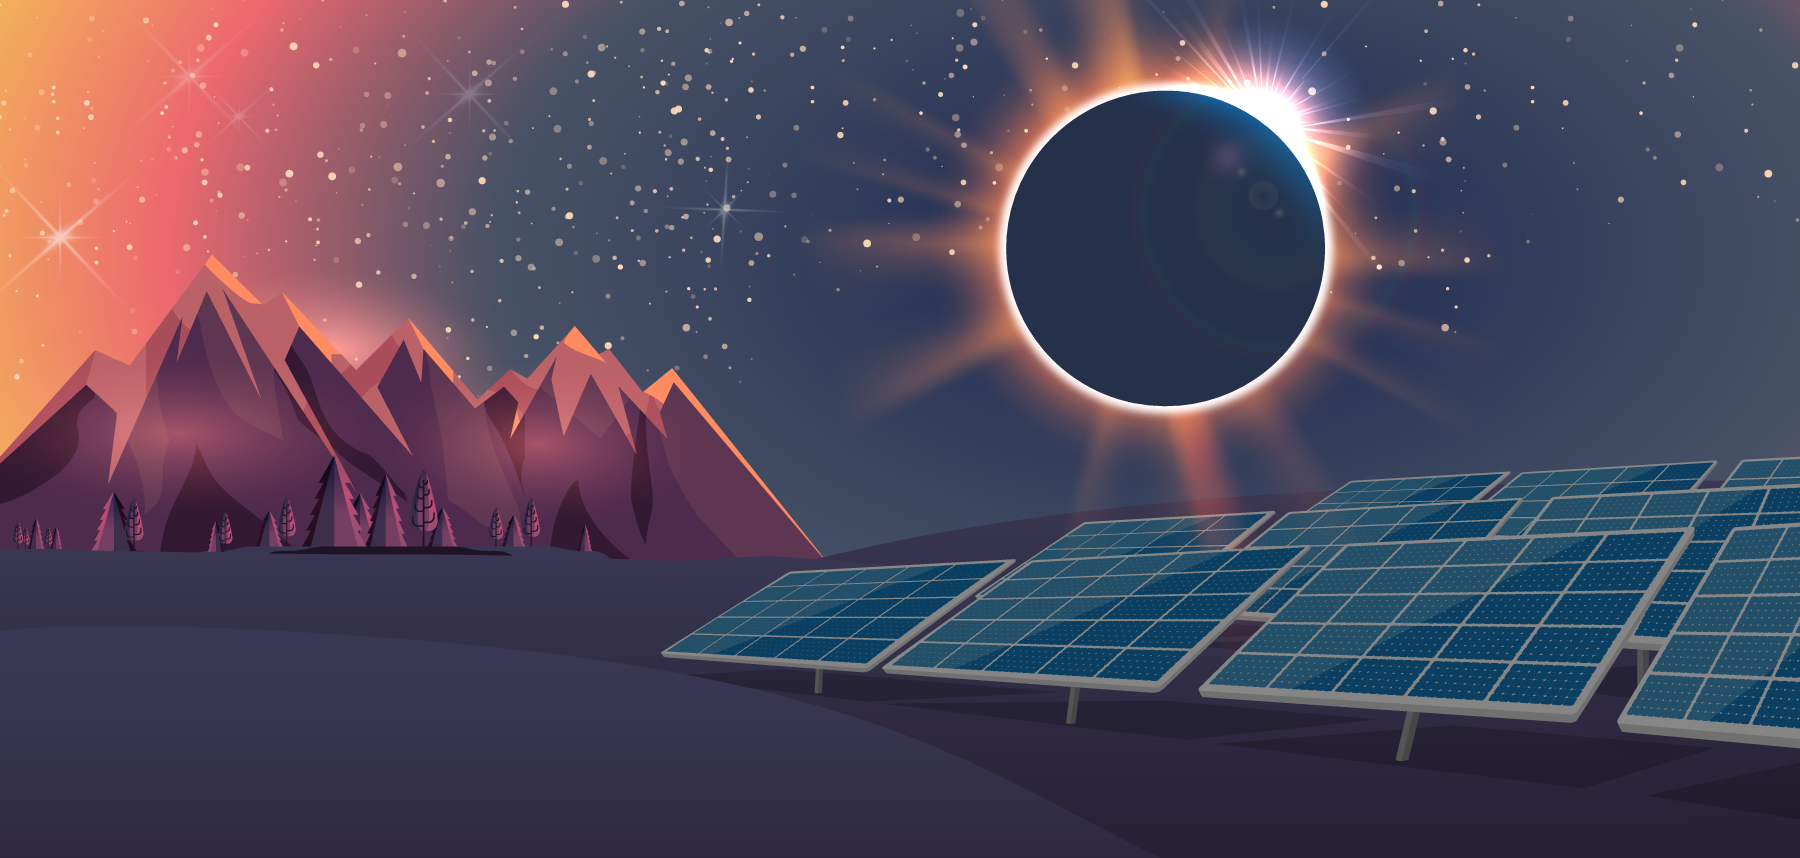 Total Eclipse Of The Sun: How Will Changing Solar Power Output Impact The  Grid? | Department Of Energy